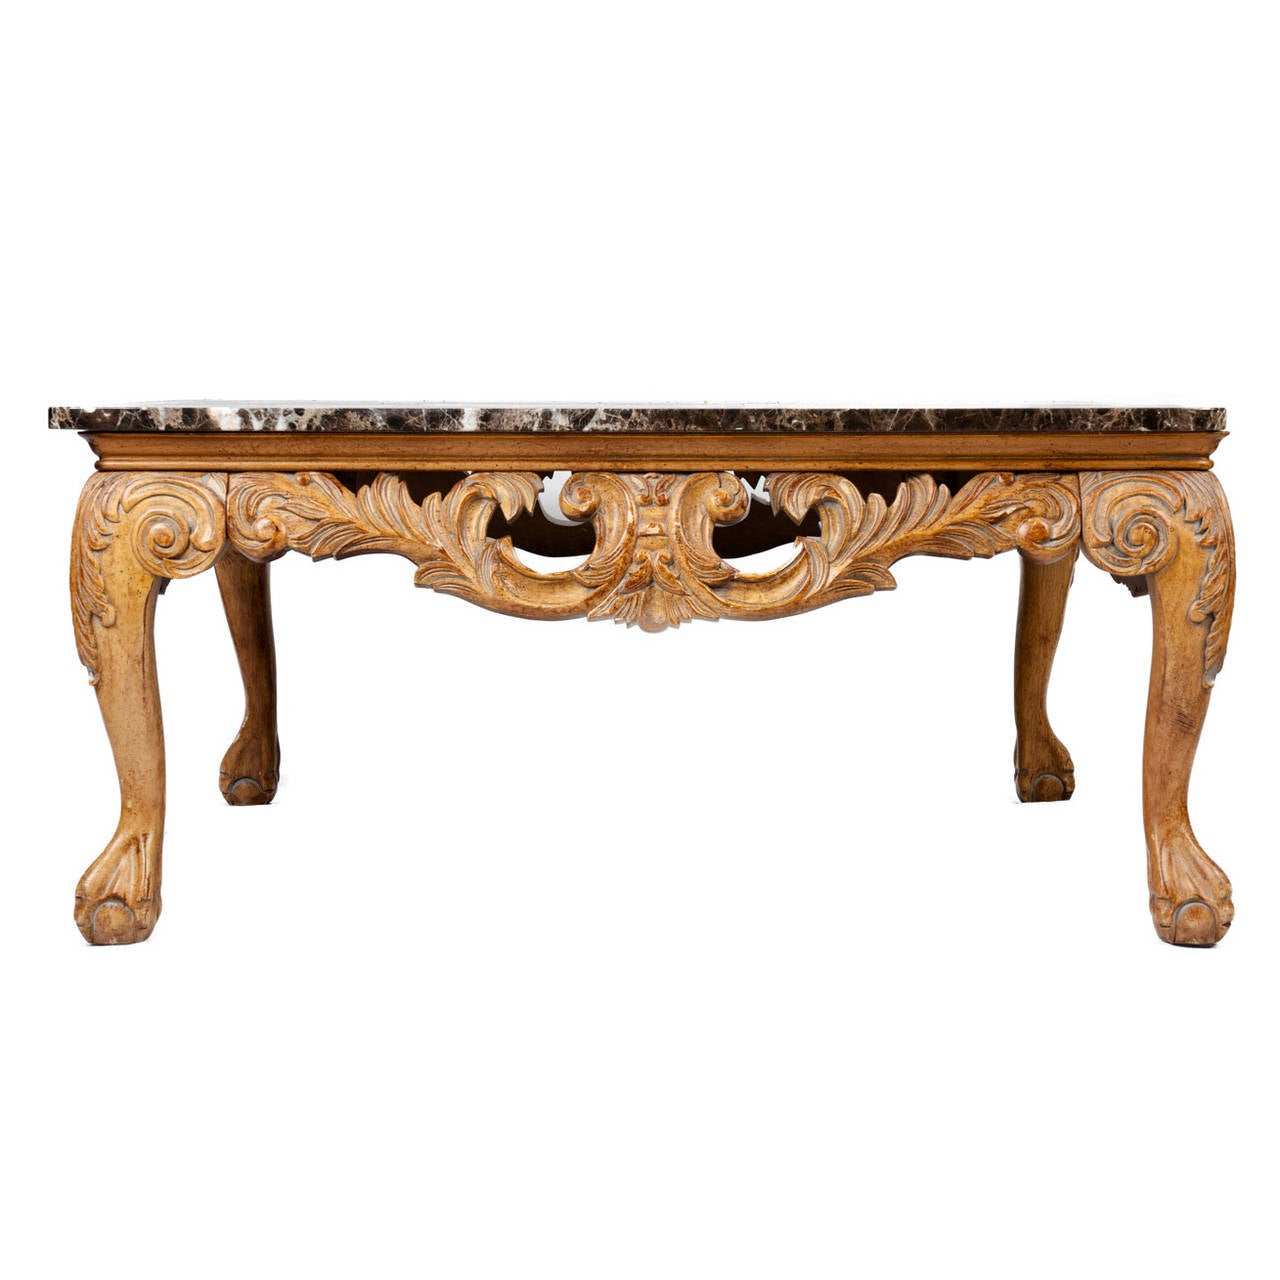 Marble Coffee Table Antique: Vintage European Marble-Top Coffee Table At 1stdibs